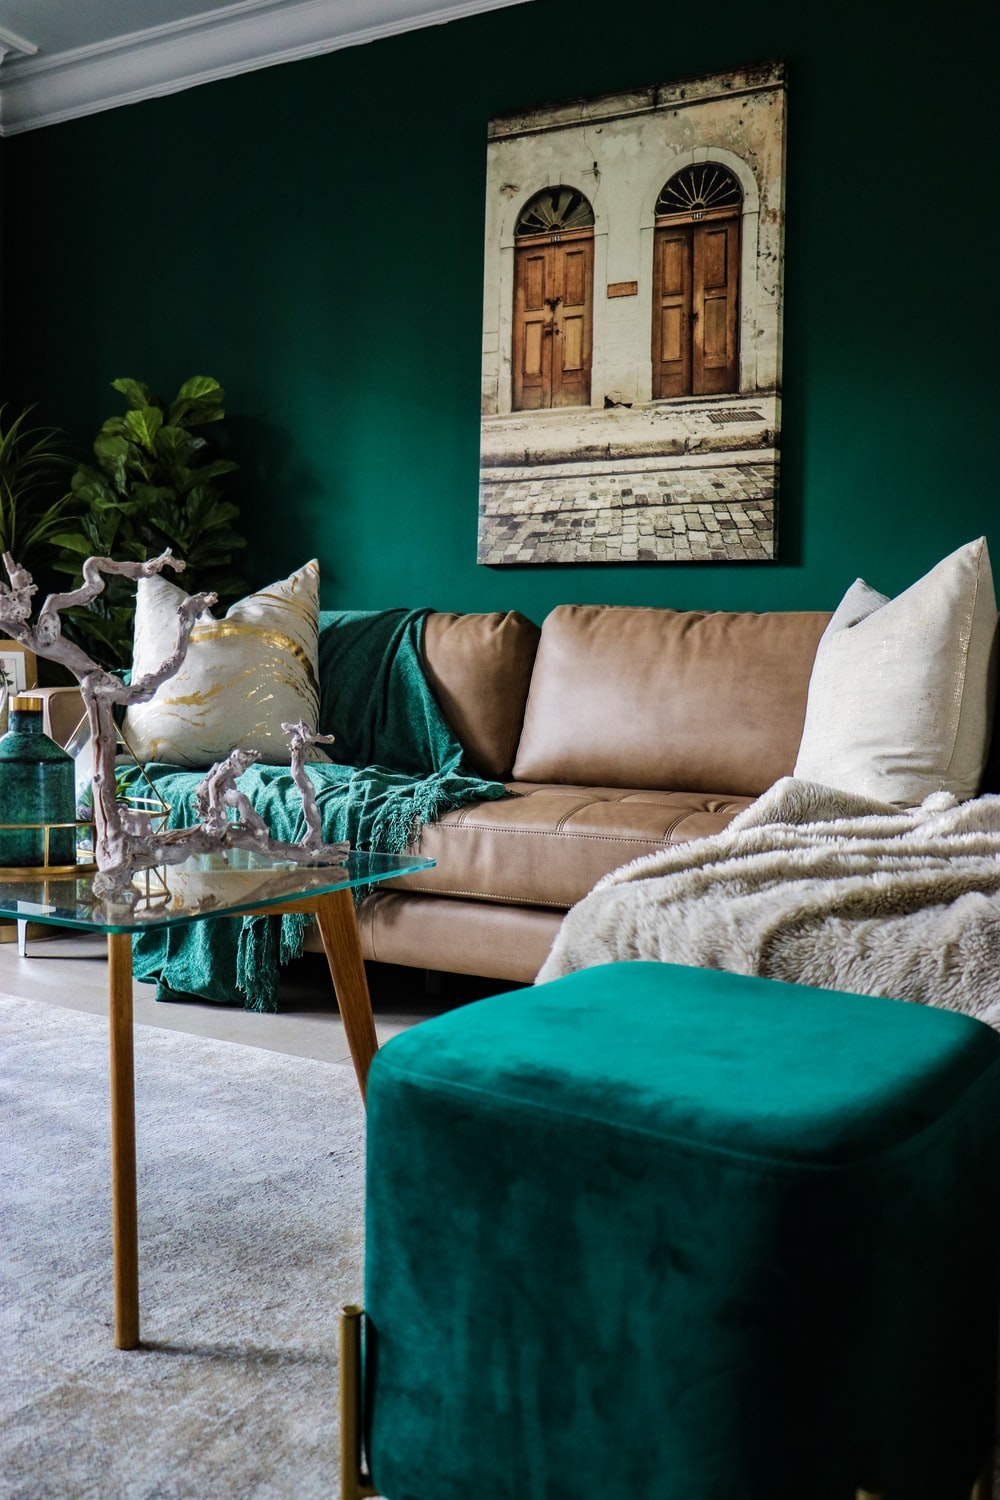 beige leather couch and green ottoman